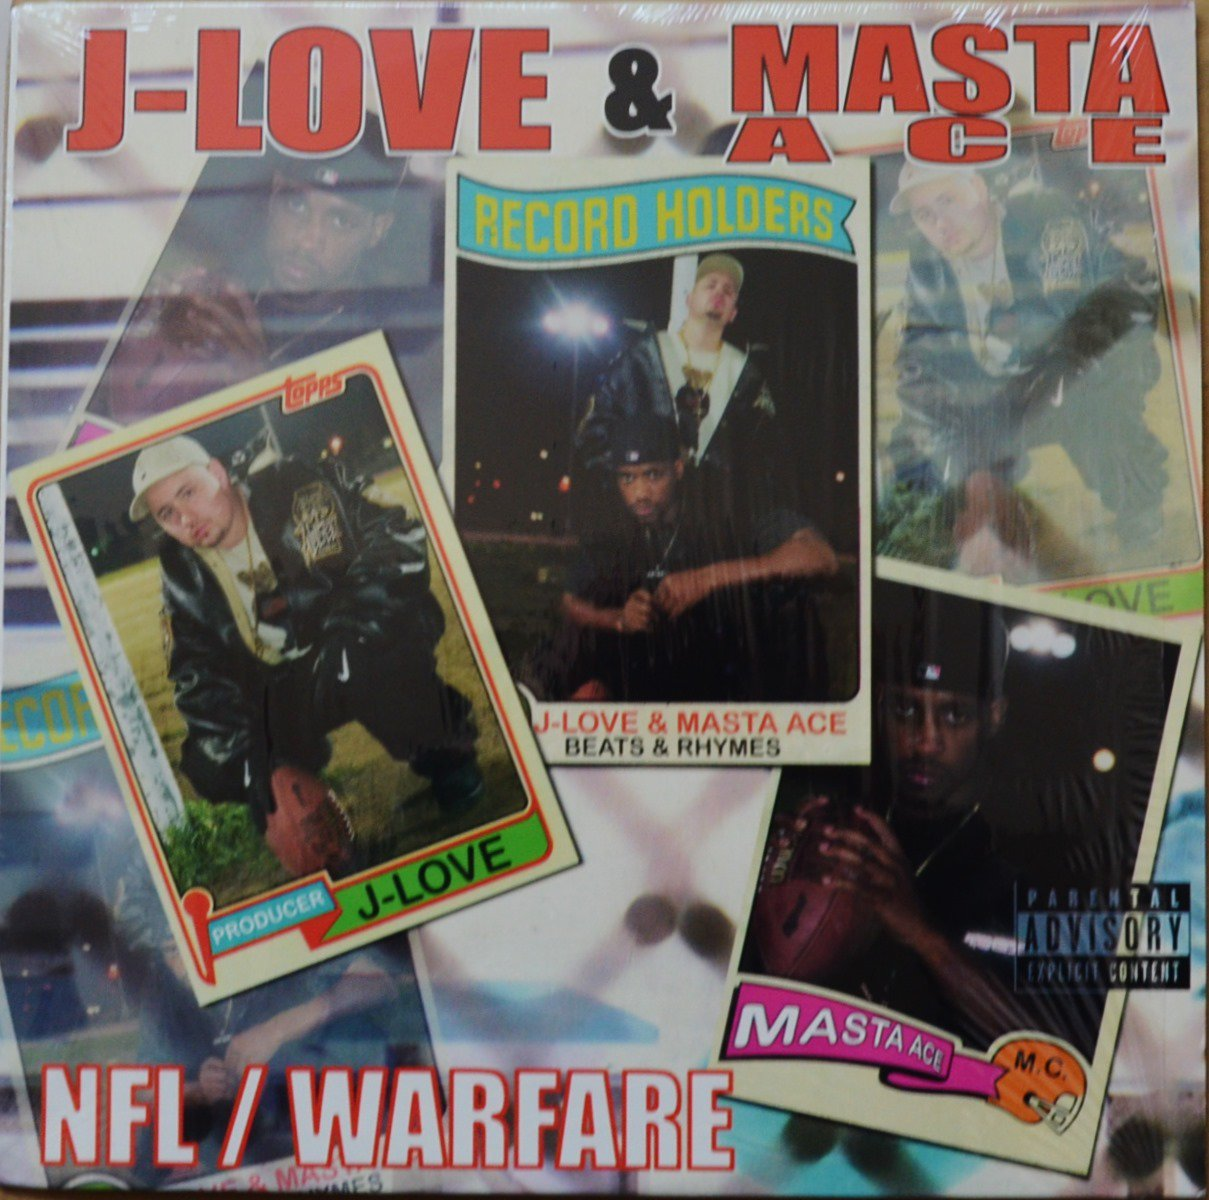 J-LOVE & MASTA ACE / NFL / WARFARE (12